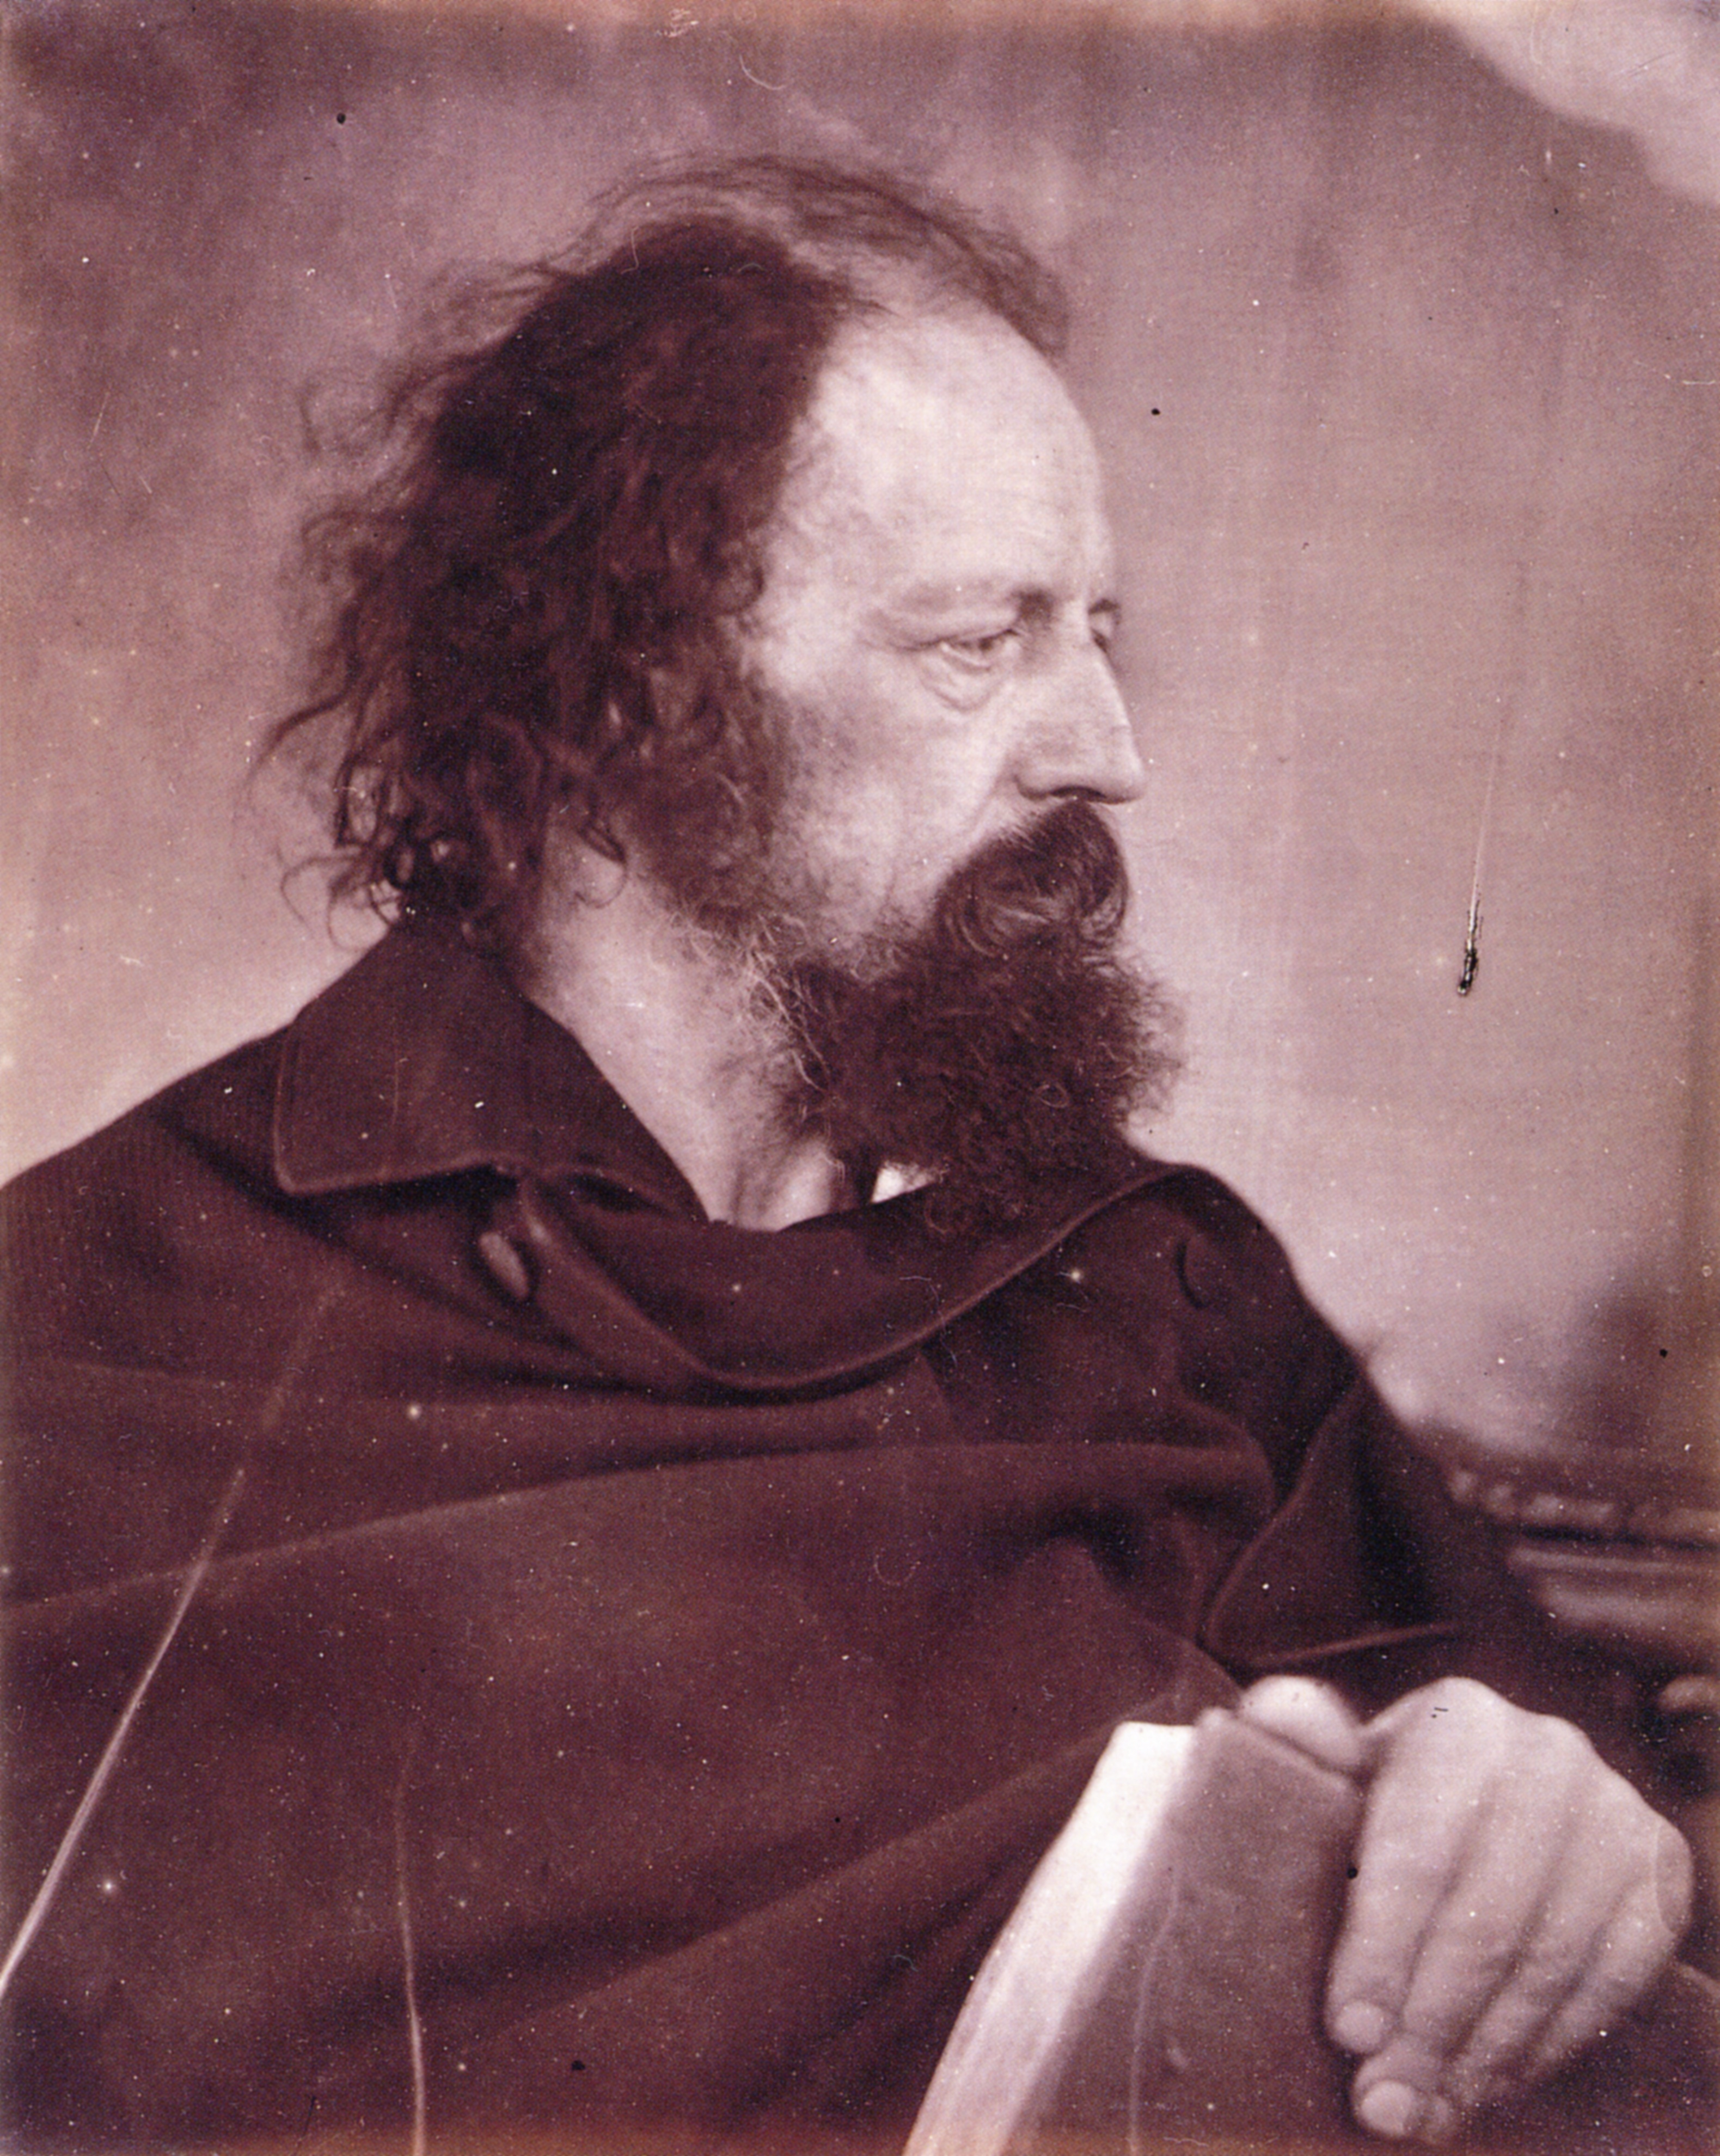 ulysses alfred tennyson poem Match'd with an aged wife, i mete and dole unequal laws unto a savage race   that hoard, and sleep, and feed, and know not me i cannot rest from travel: i will .